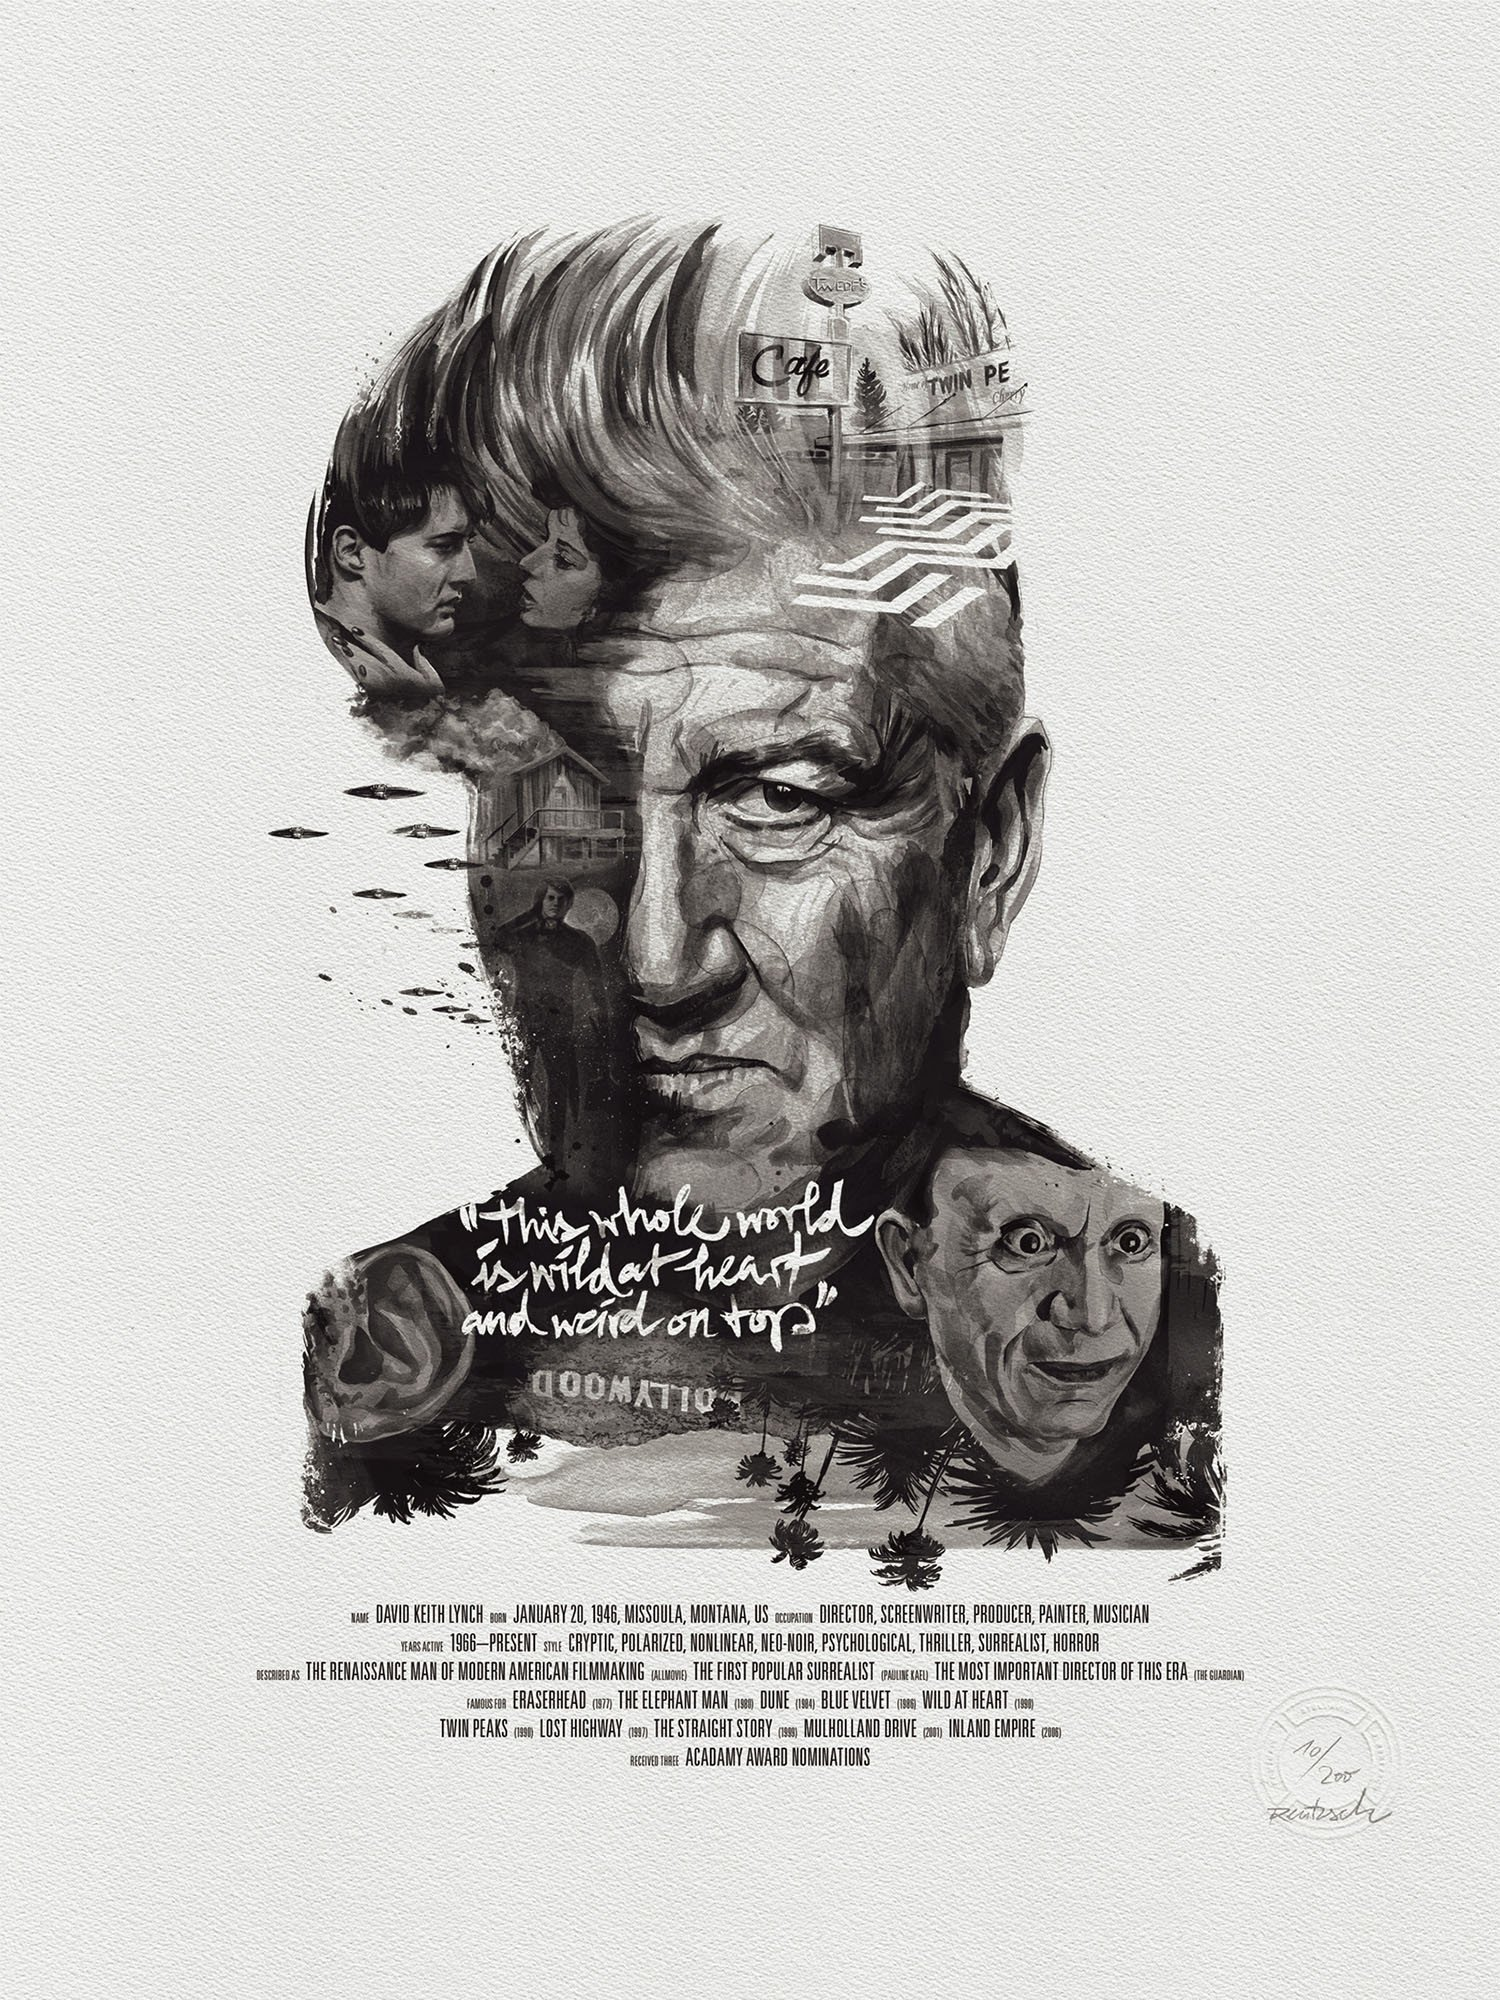 stellavie-rentzsch-movie-director-portrait-prints-david-lynch-flat_153da464-26d5-4682-b4e8-12724c9e5258_2048x2048